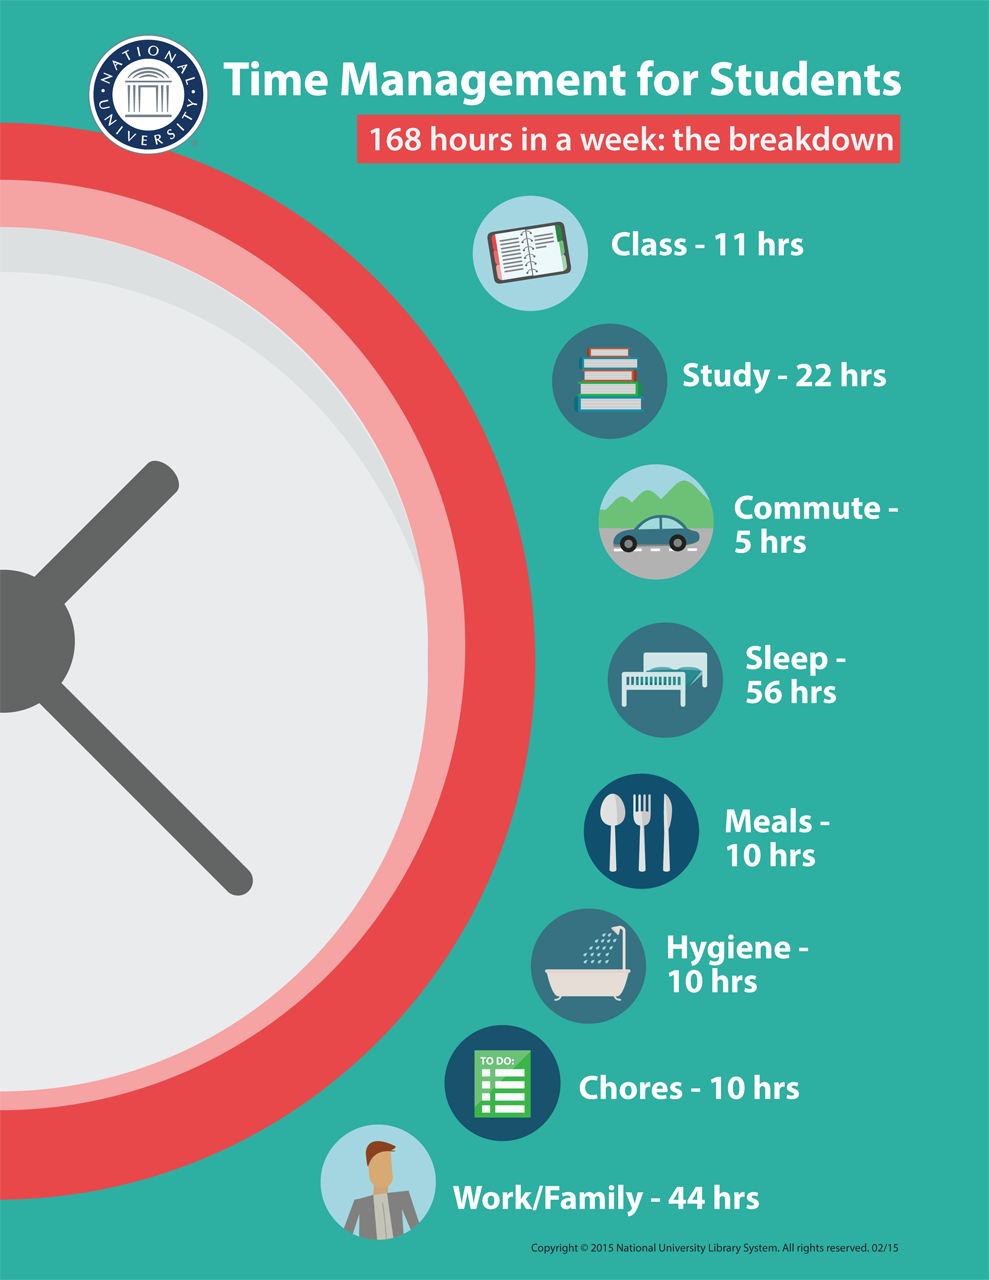 time management, understanding 168 hours in a week